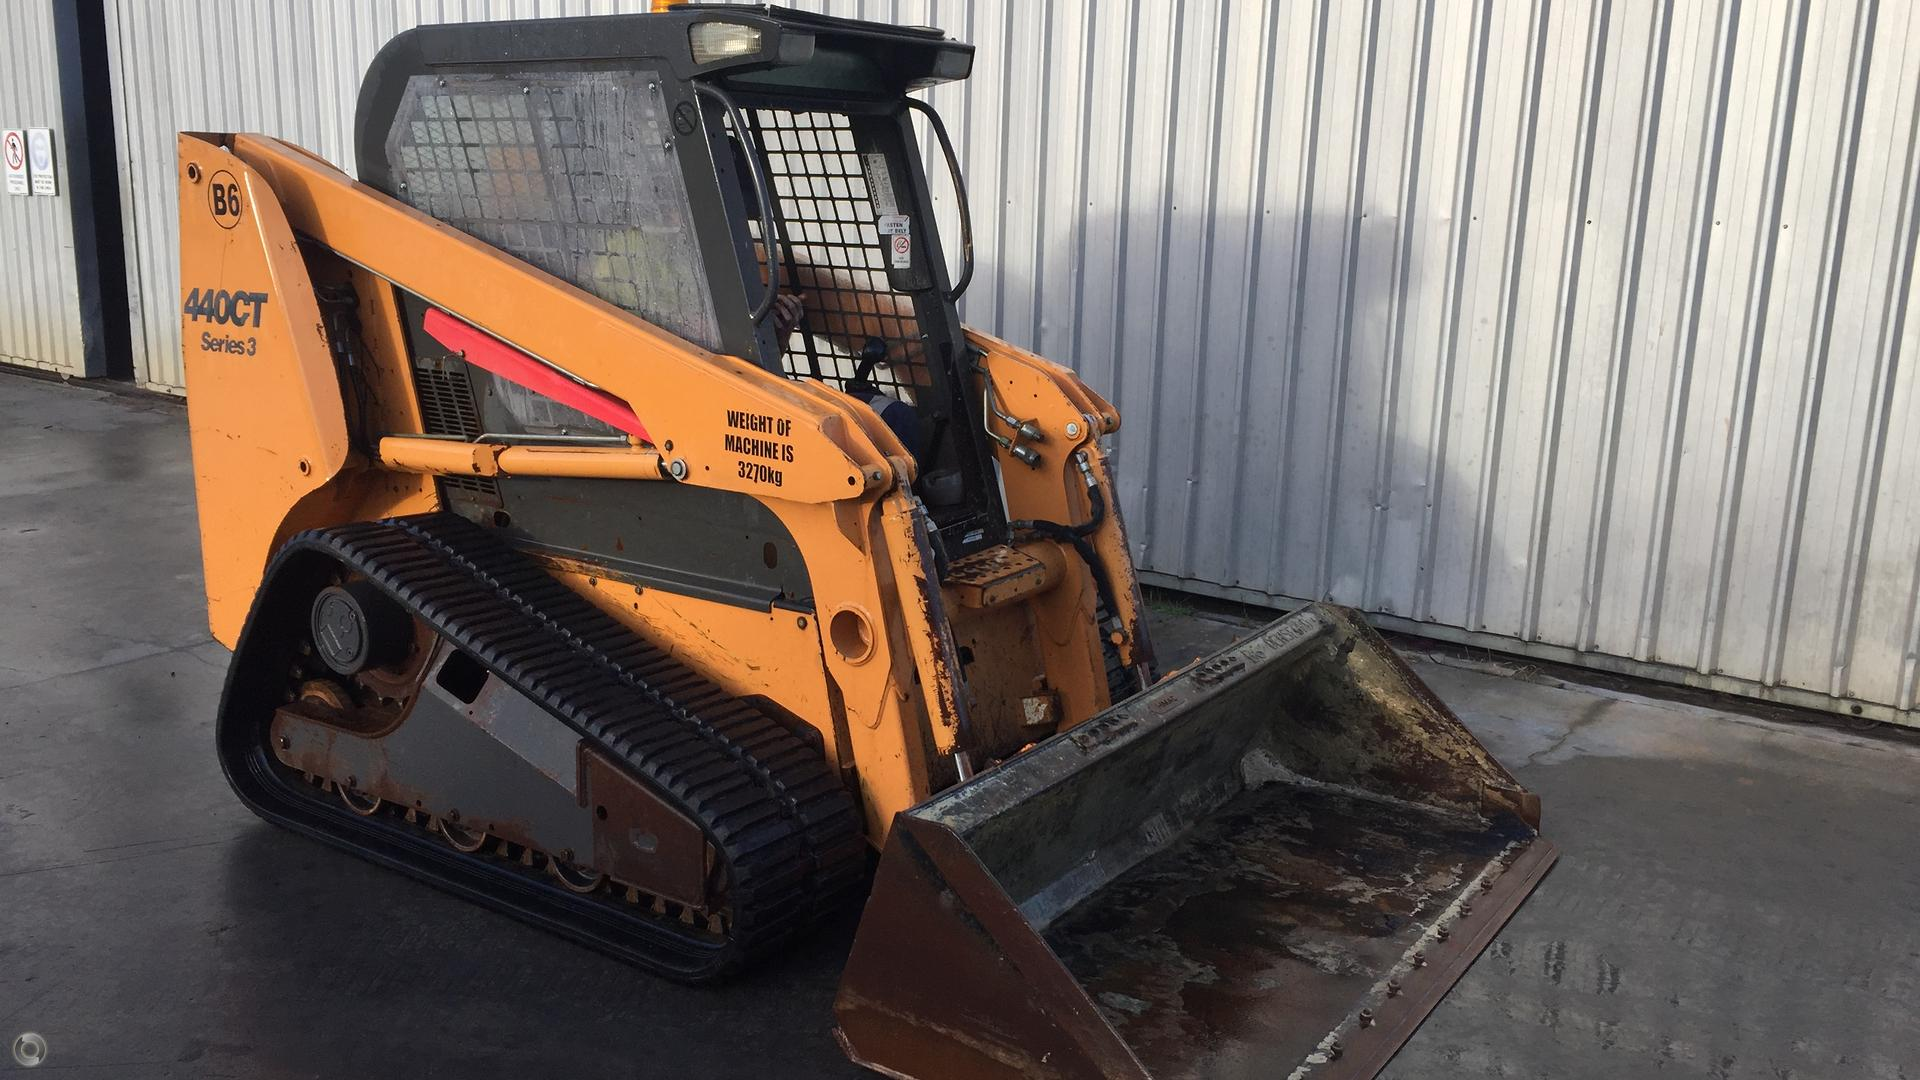 2010 CASE 440CT Compact Track Loader